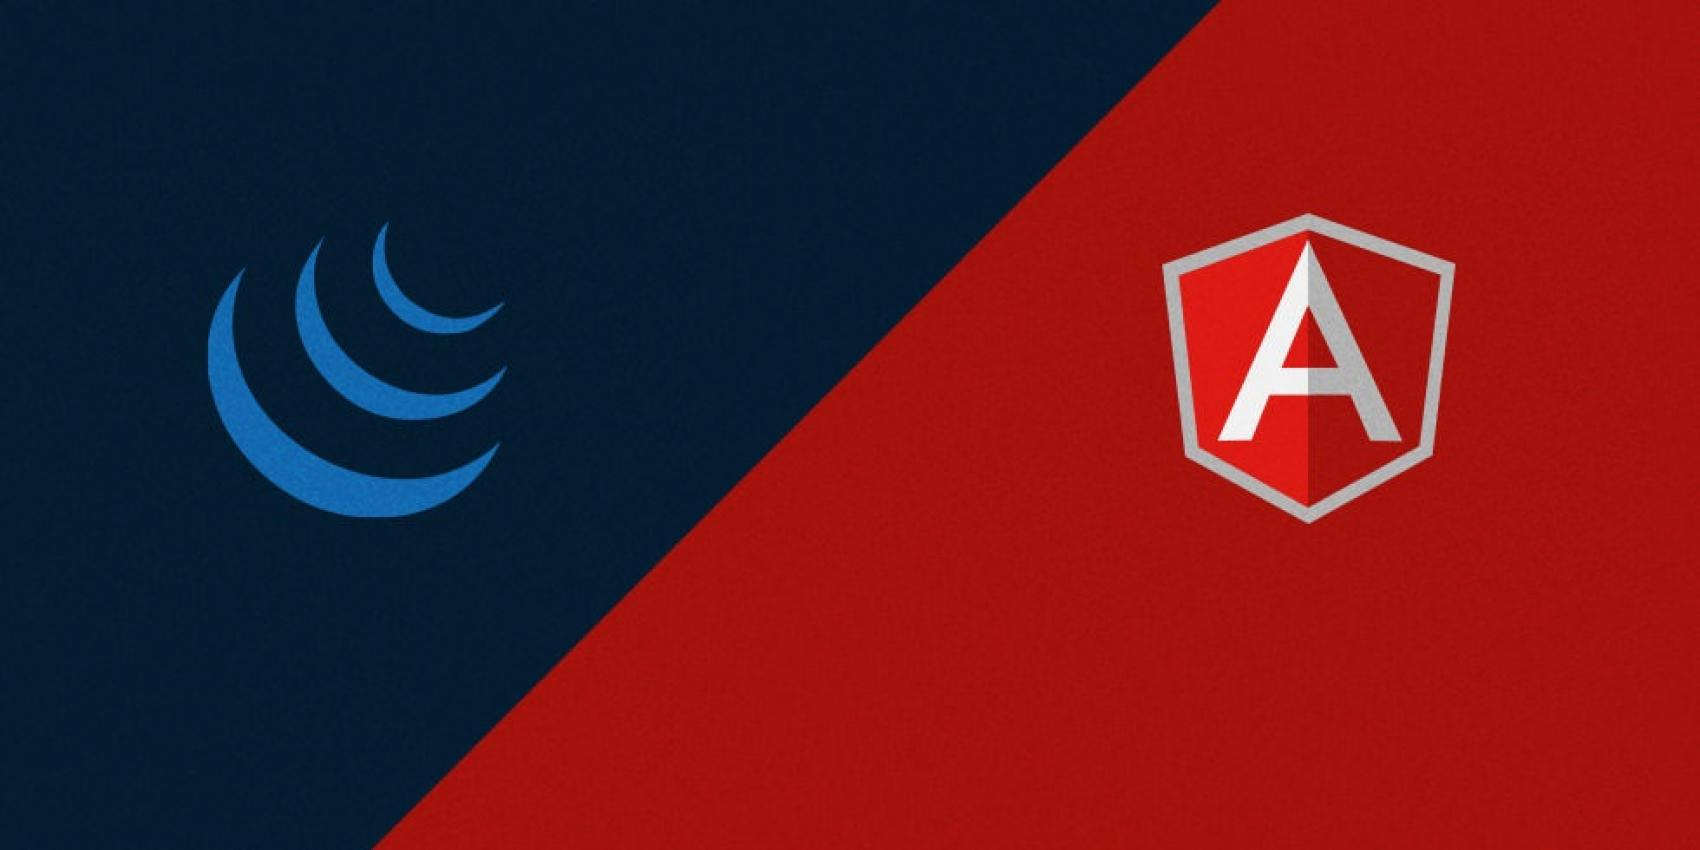 Why Choose AngularJS over JQuery for Infinite Scroll?